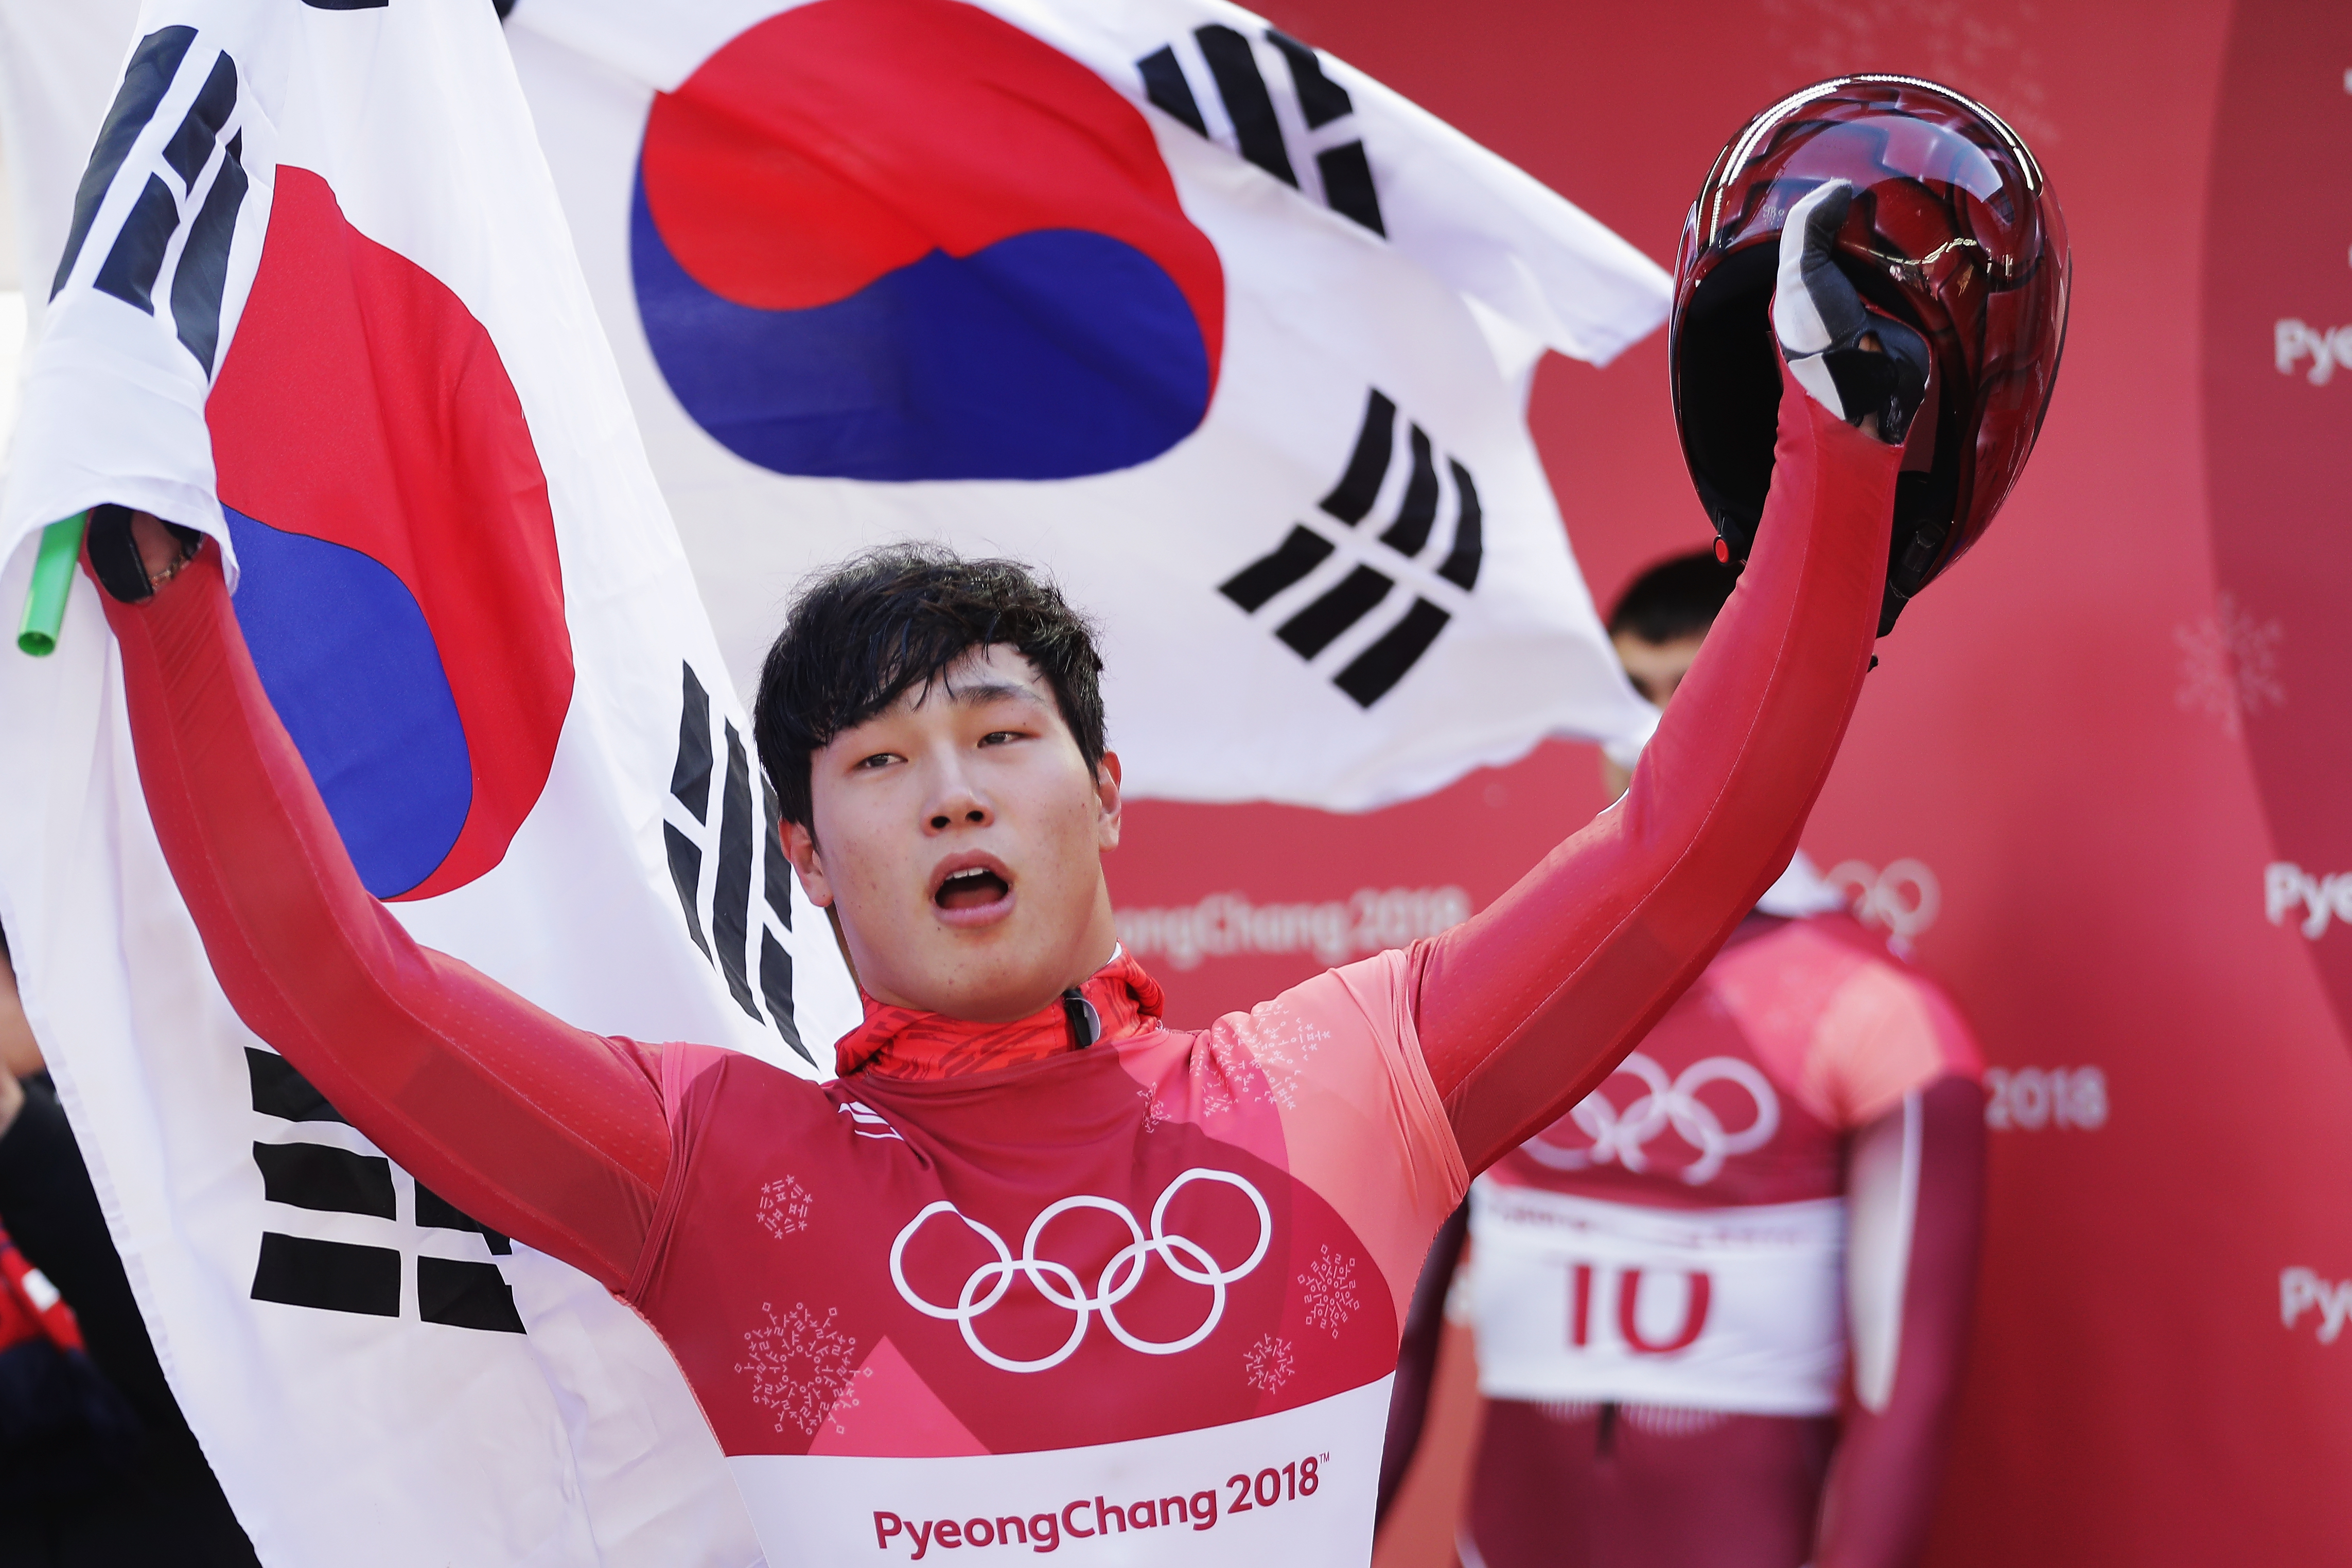 Sungbin Yun of Korea celebrates winning the Men's Skeleton in Pyeongchang, South Koreaon Feb. 16, 2018.